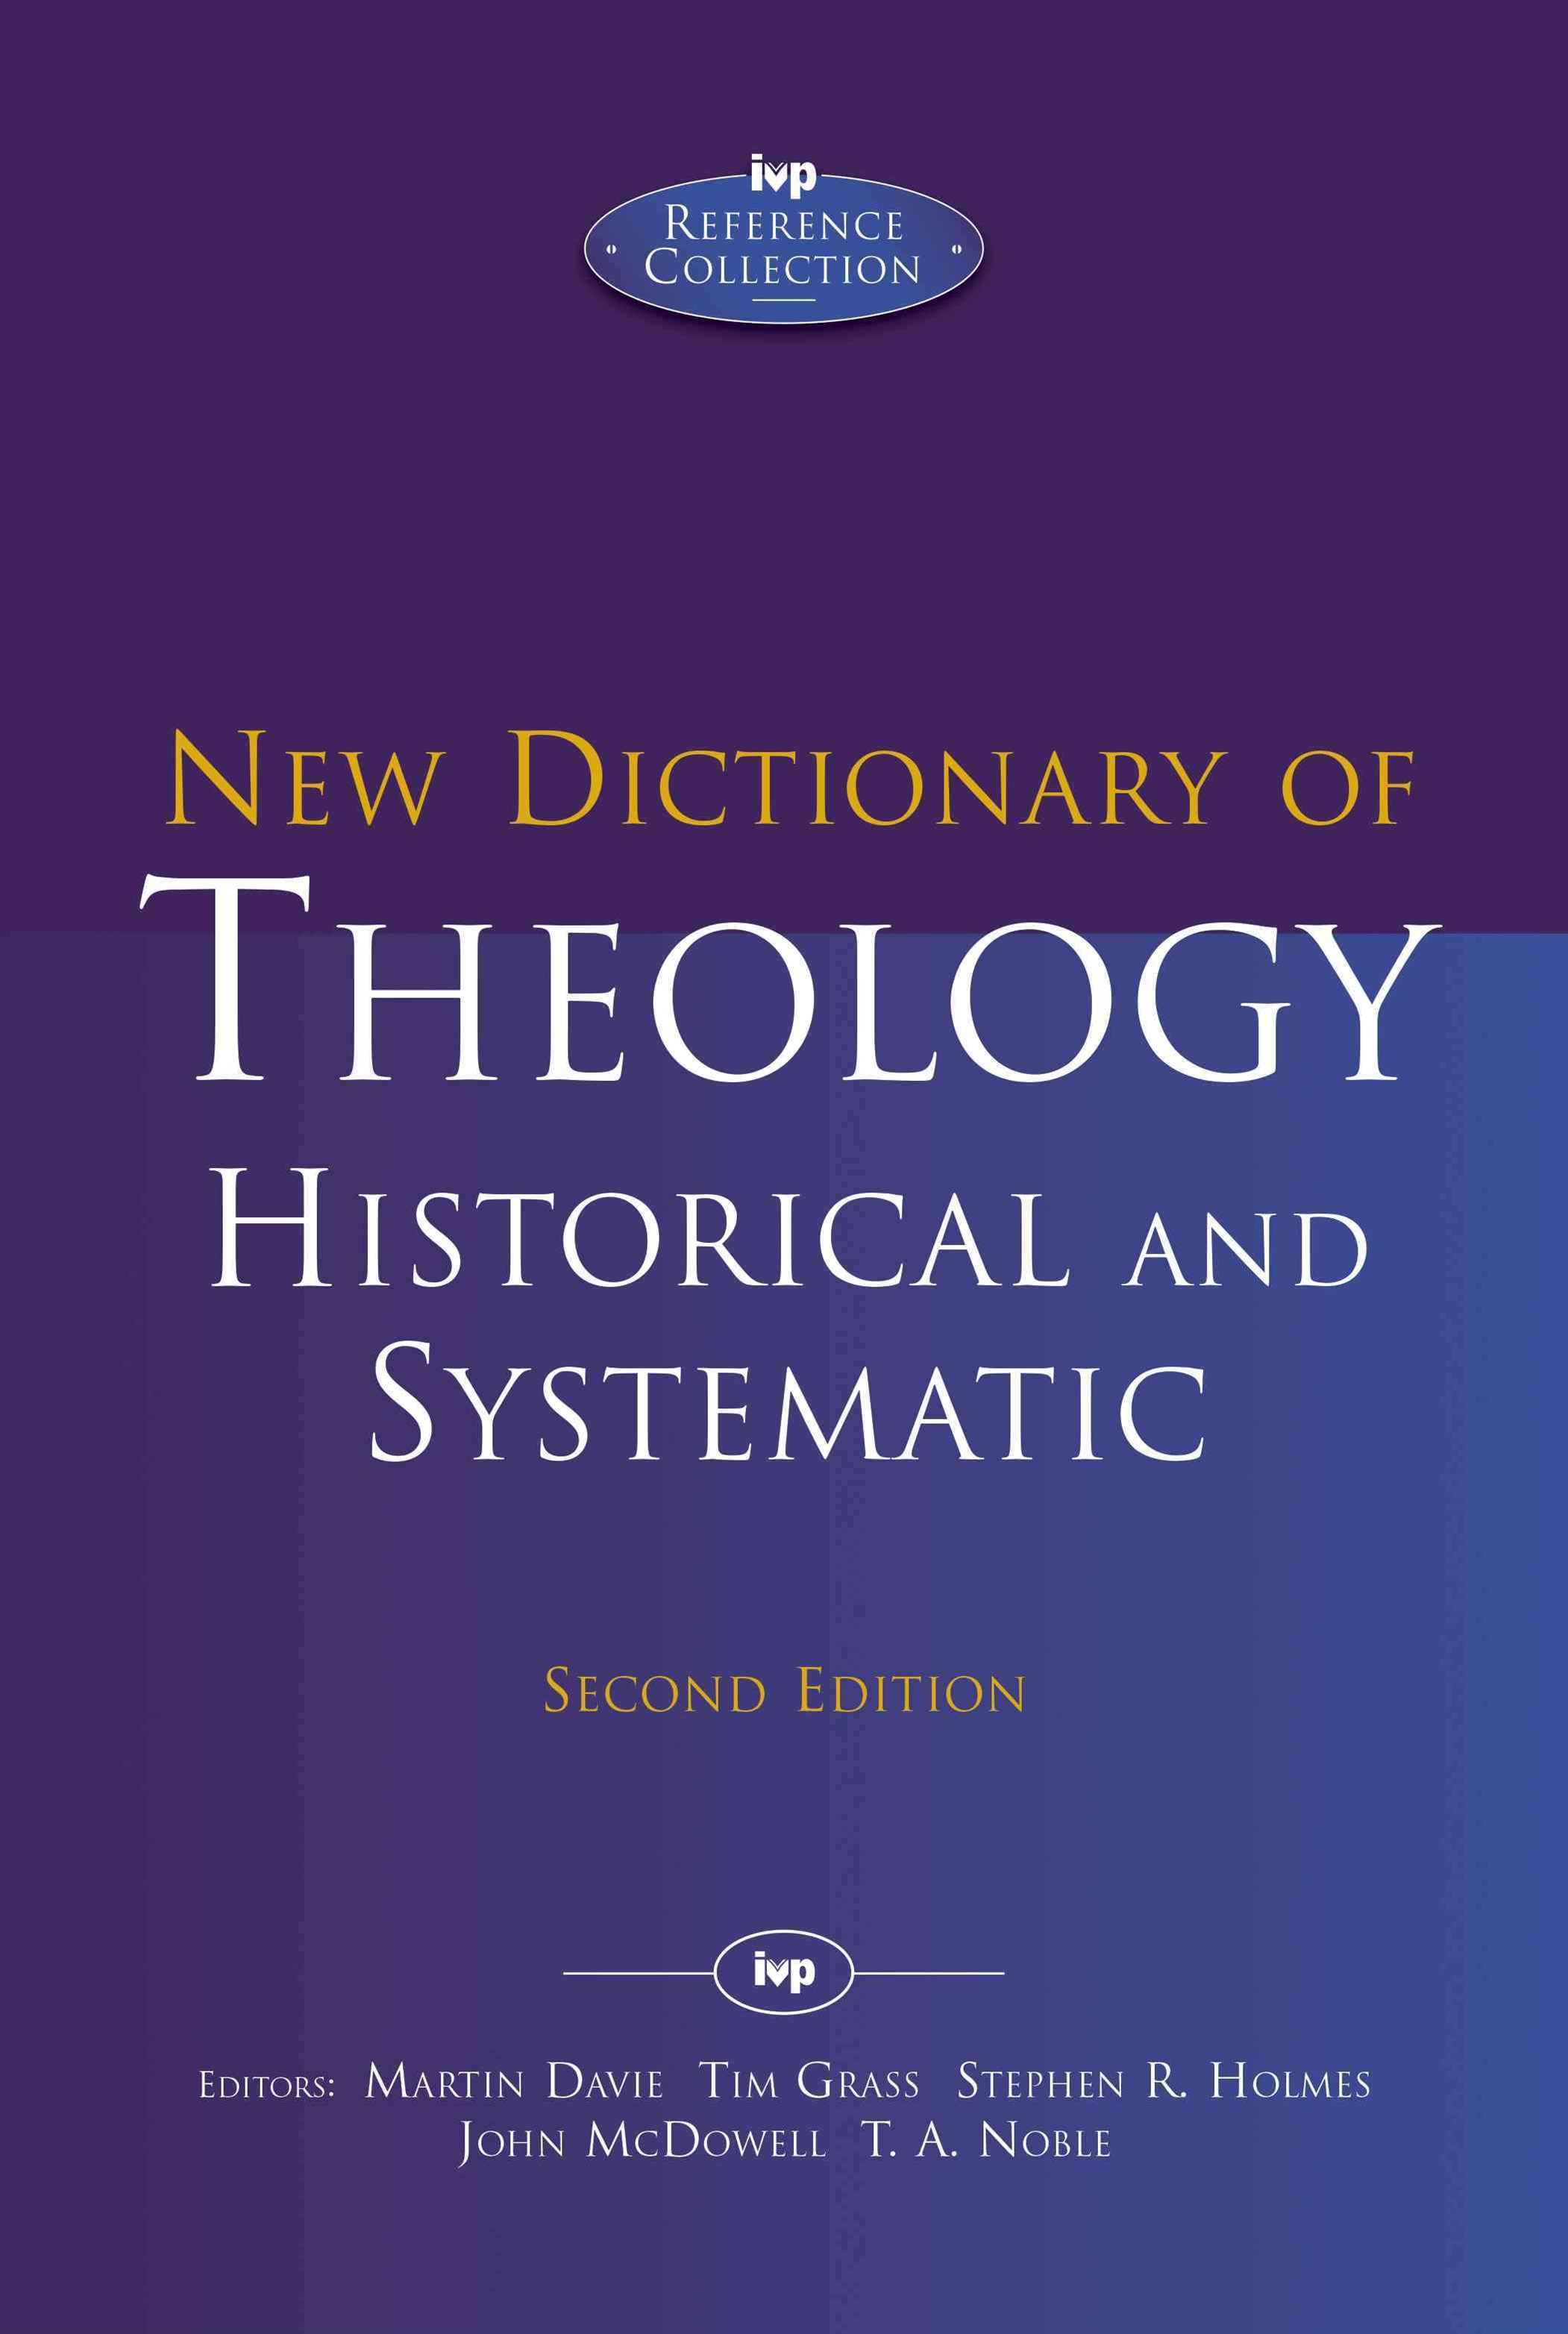 New Dictionary of Theology: Historical and Systematic (Second Edition)